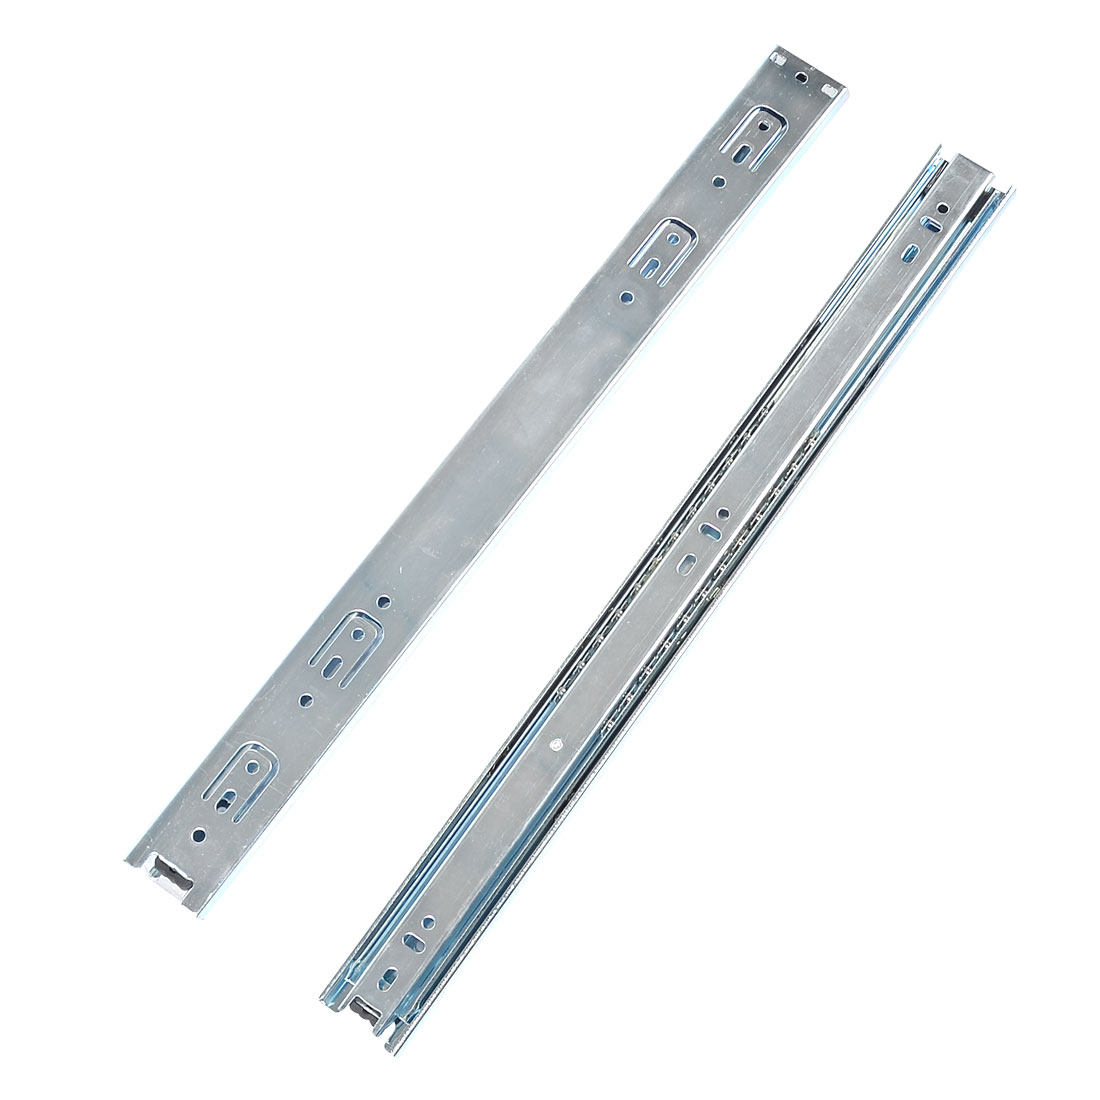 "2 Pcs Silver Tone 3 Sections Ball Bearing Drawer Slide 17"" Long"